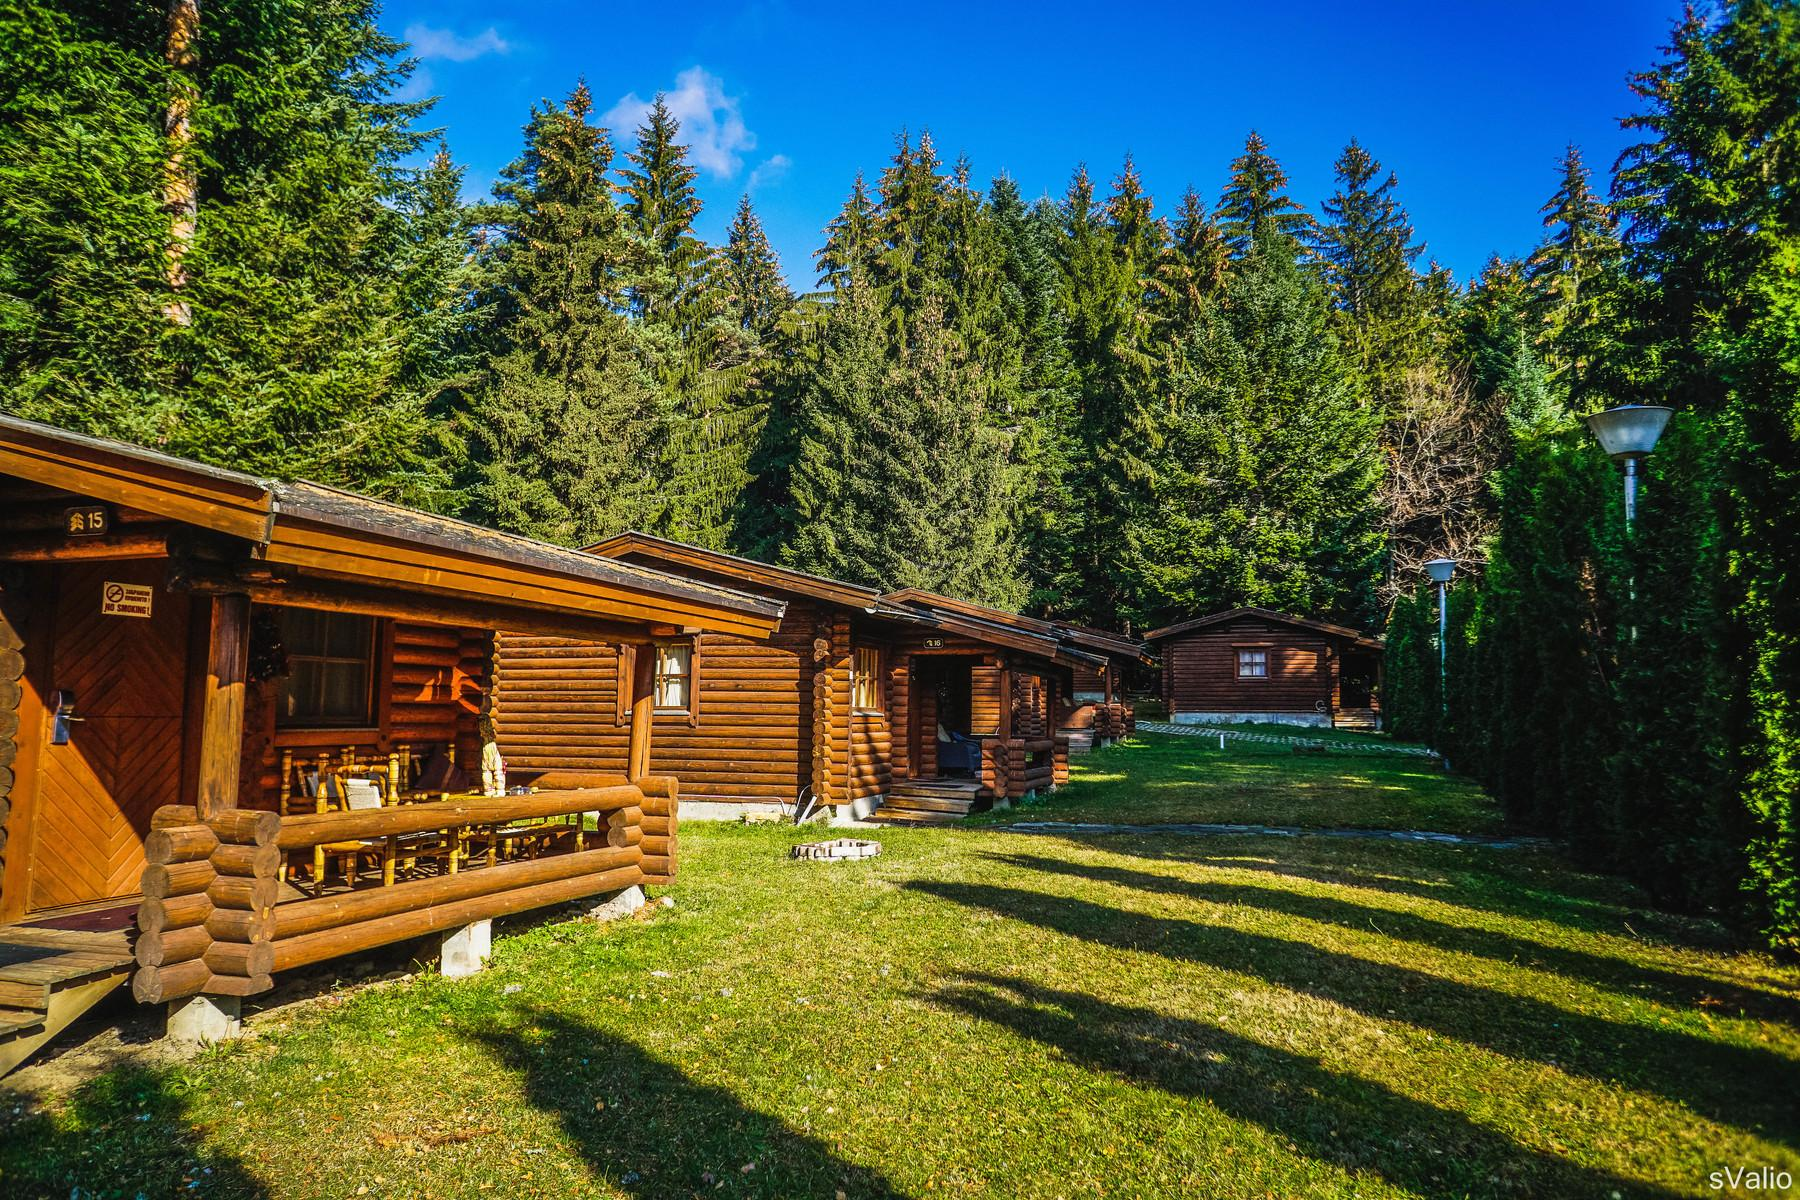 Yagoda and Malina Chalets in Borovets, Bulgaria